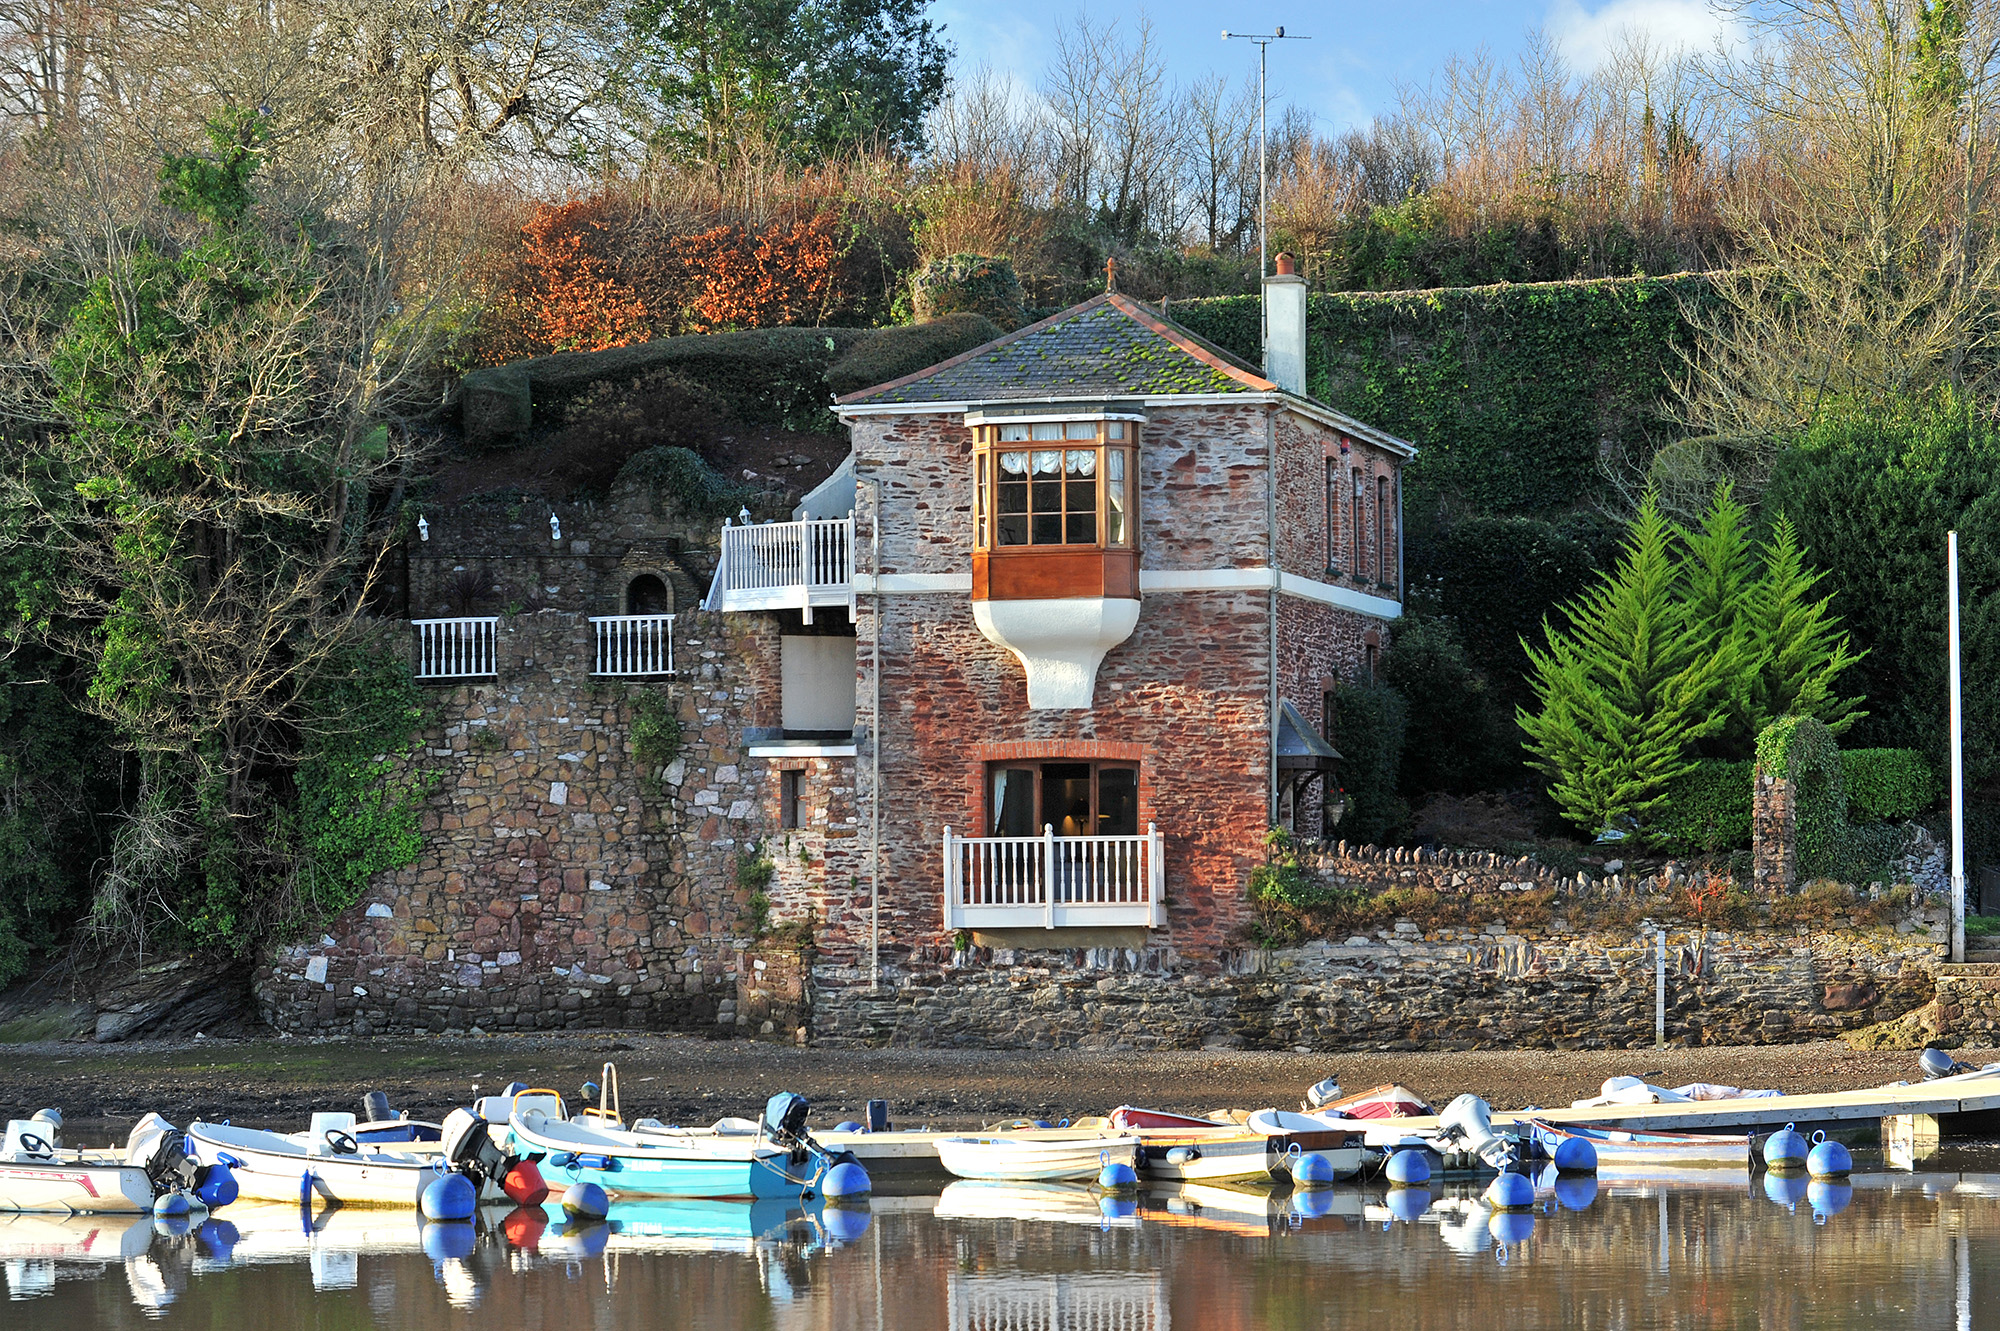 Boathouse_002_s.jpg